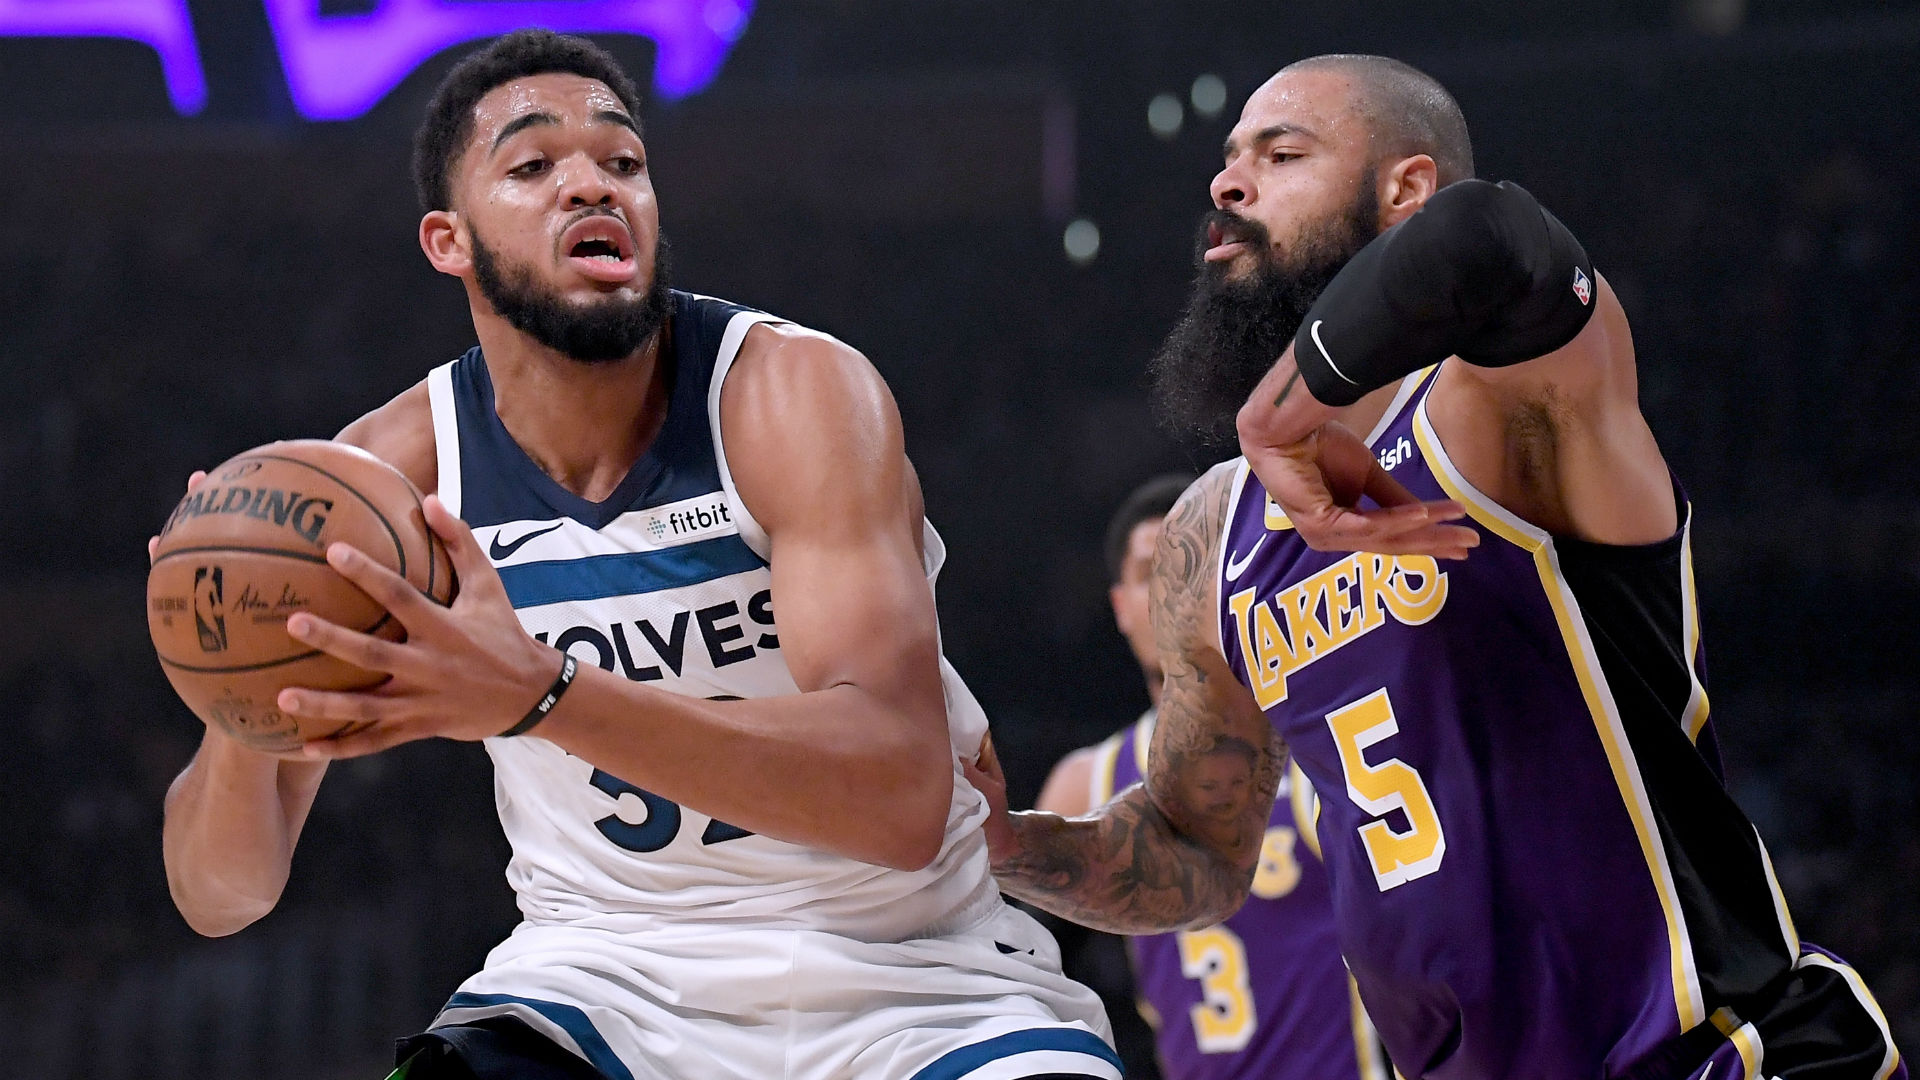 Tyson Chandler made an immediate impact on his Lakers debut and is relishing play alongside LeBron James.